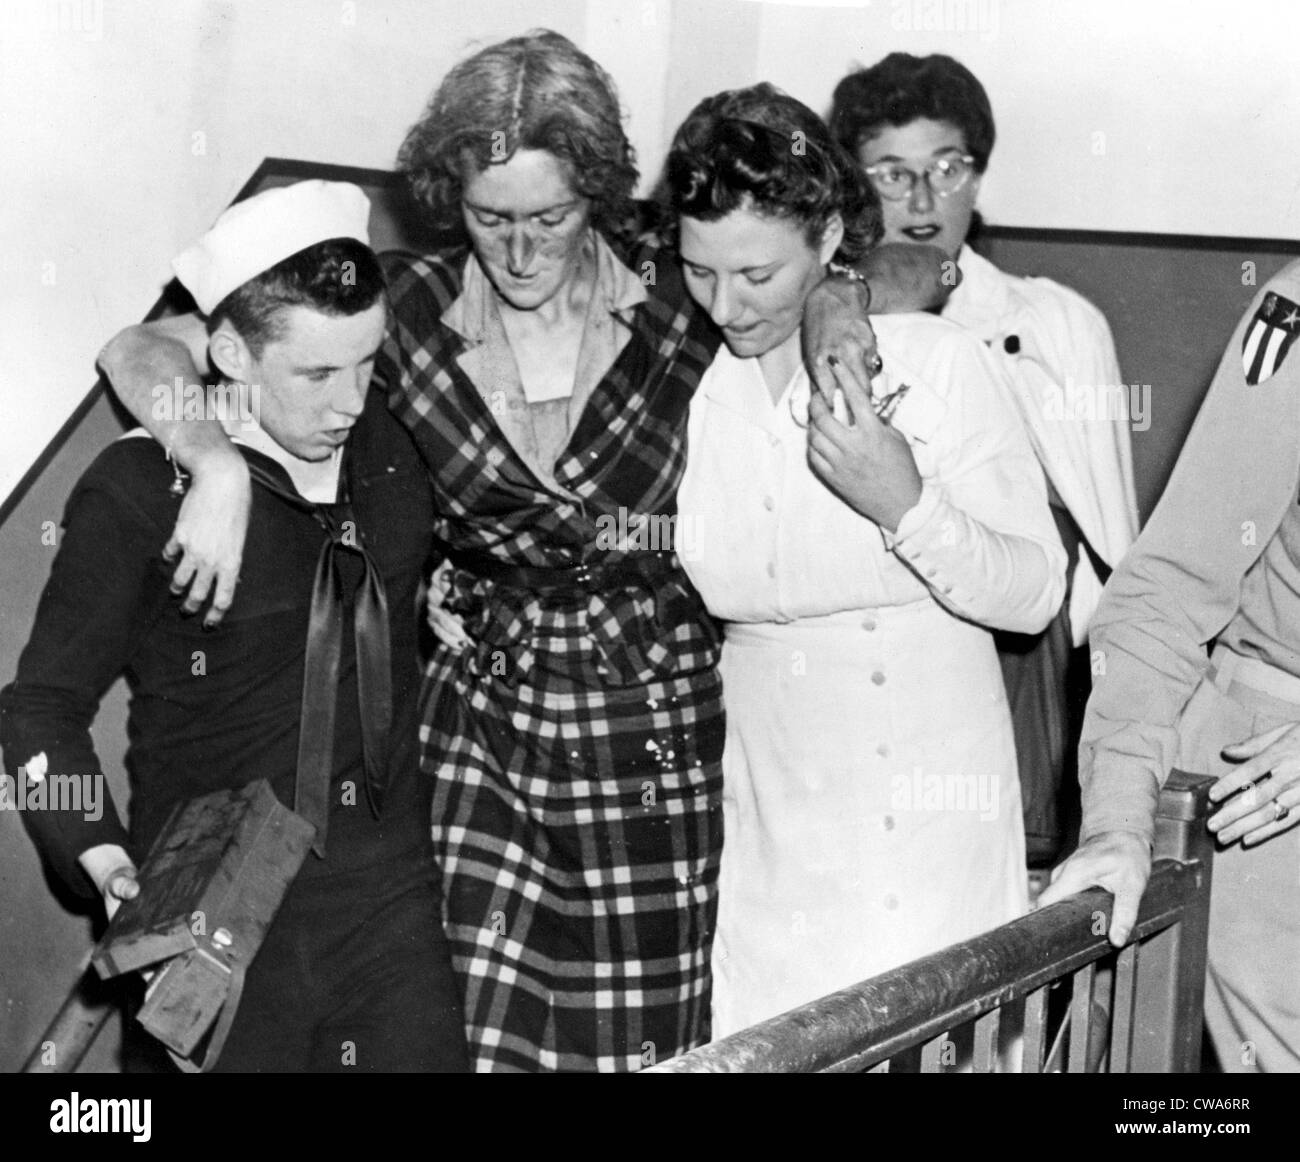 HERO OF EMPIRE STATE BUILDING DISASTER  NEW YORK--First aid kit in one hand, Don Molony, 17-year-old Coast Guardsman, - Stock Image